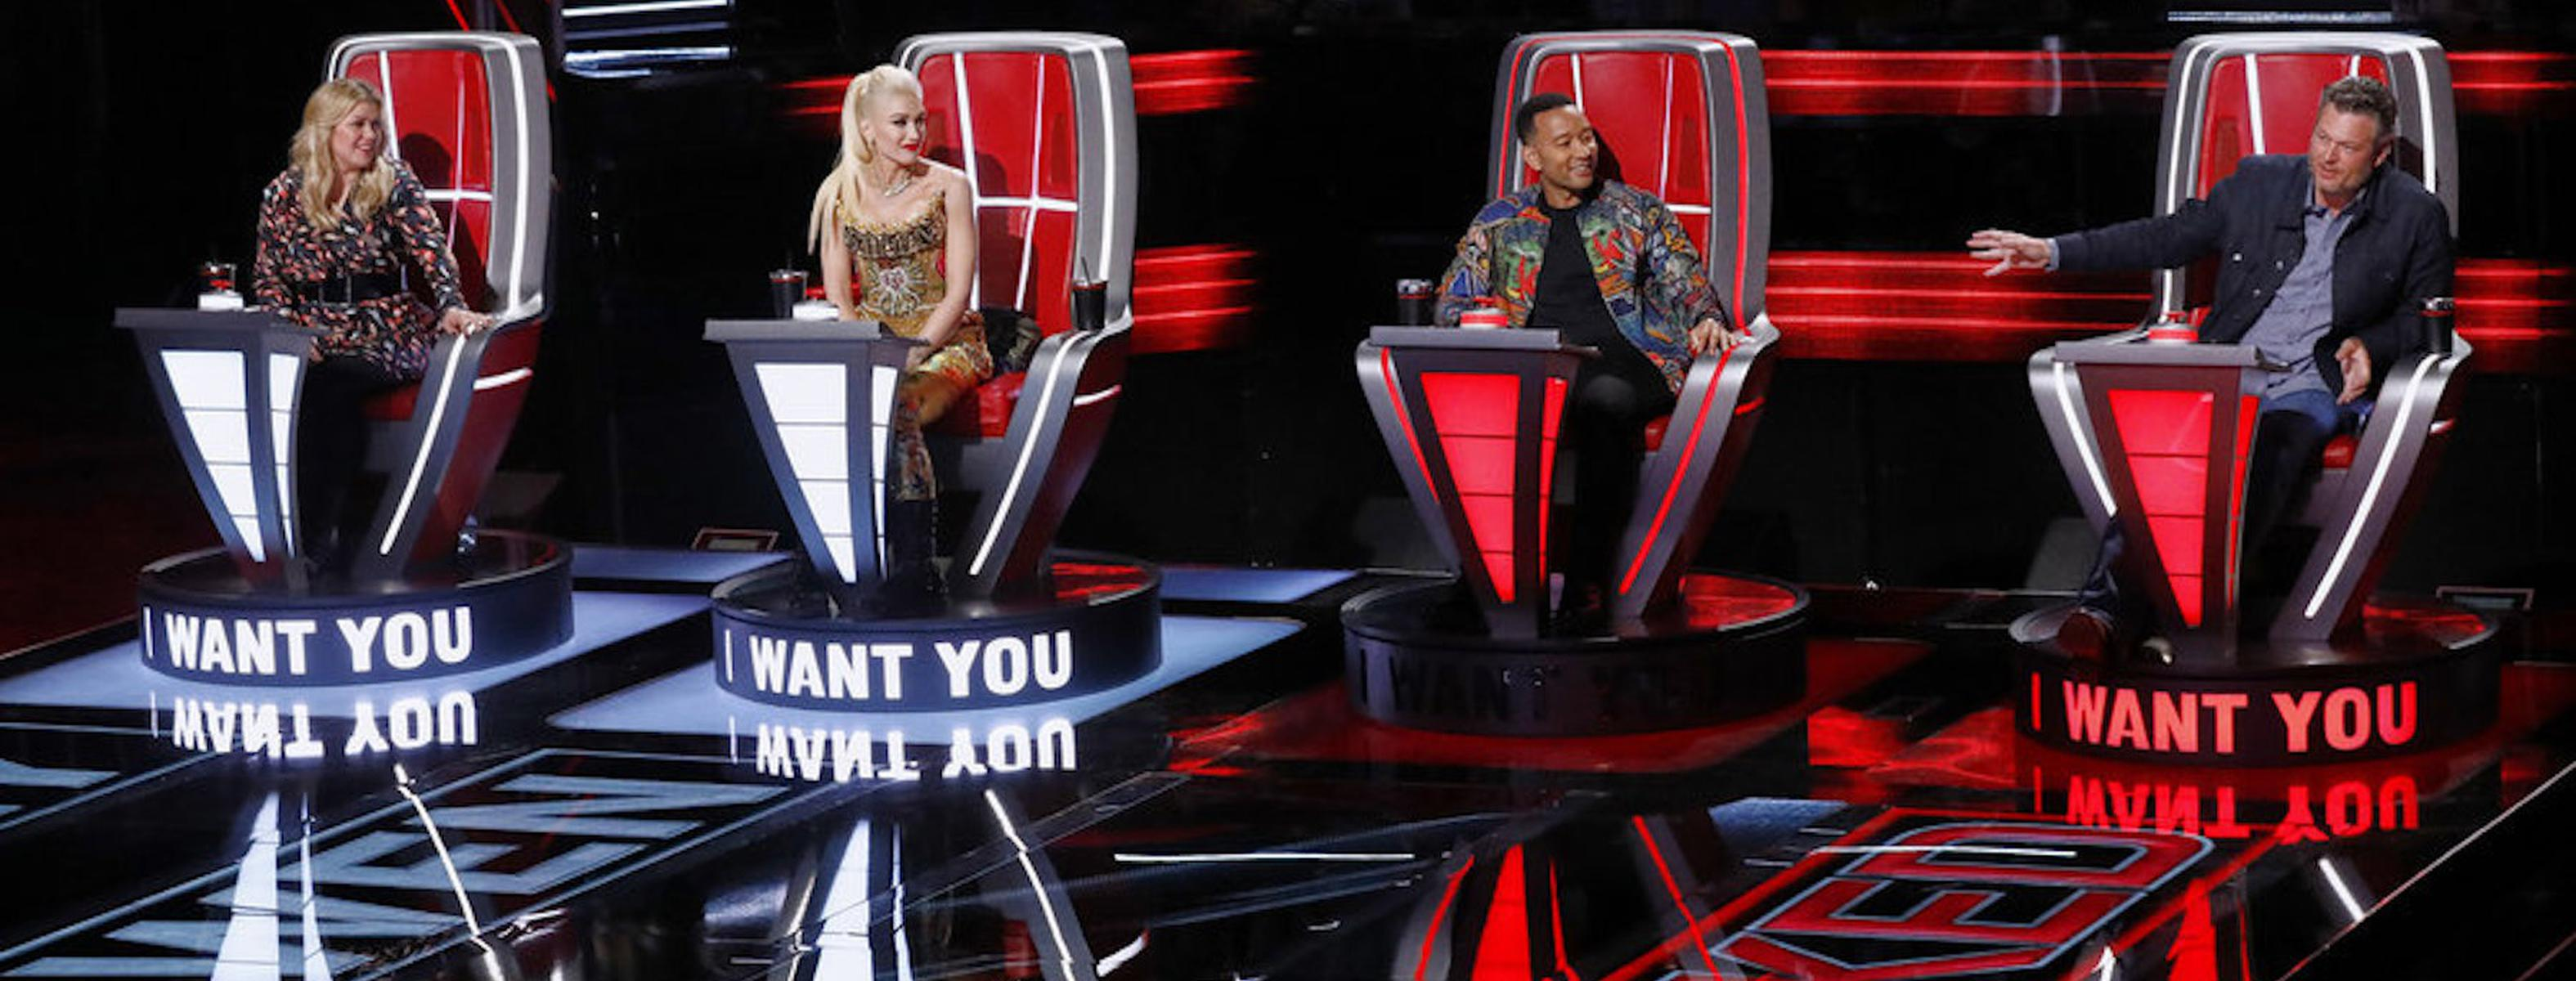 How To Audition For The Voice Open Casting Calls Backstage